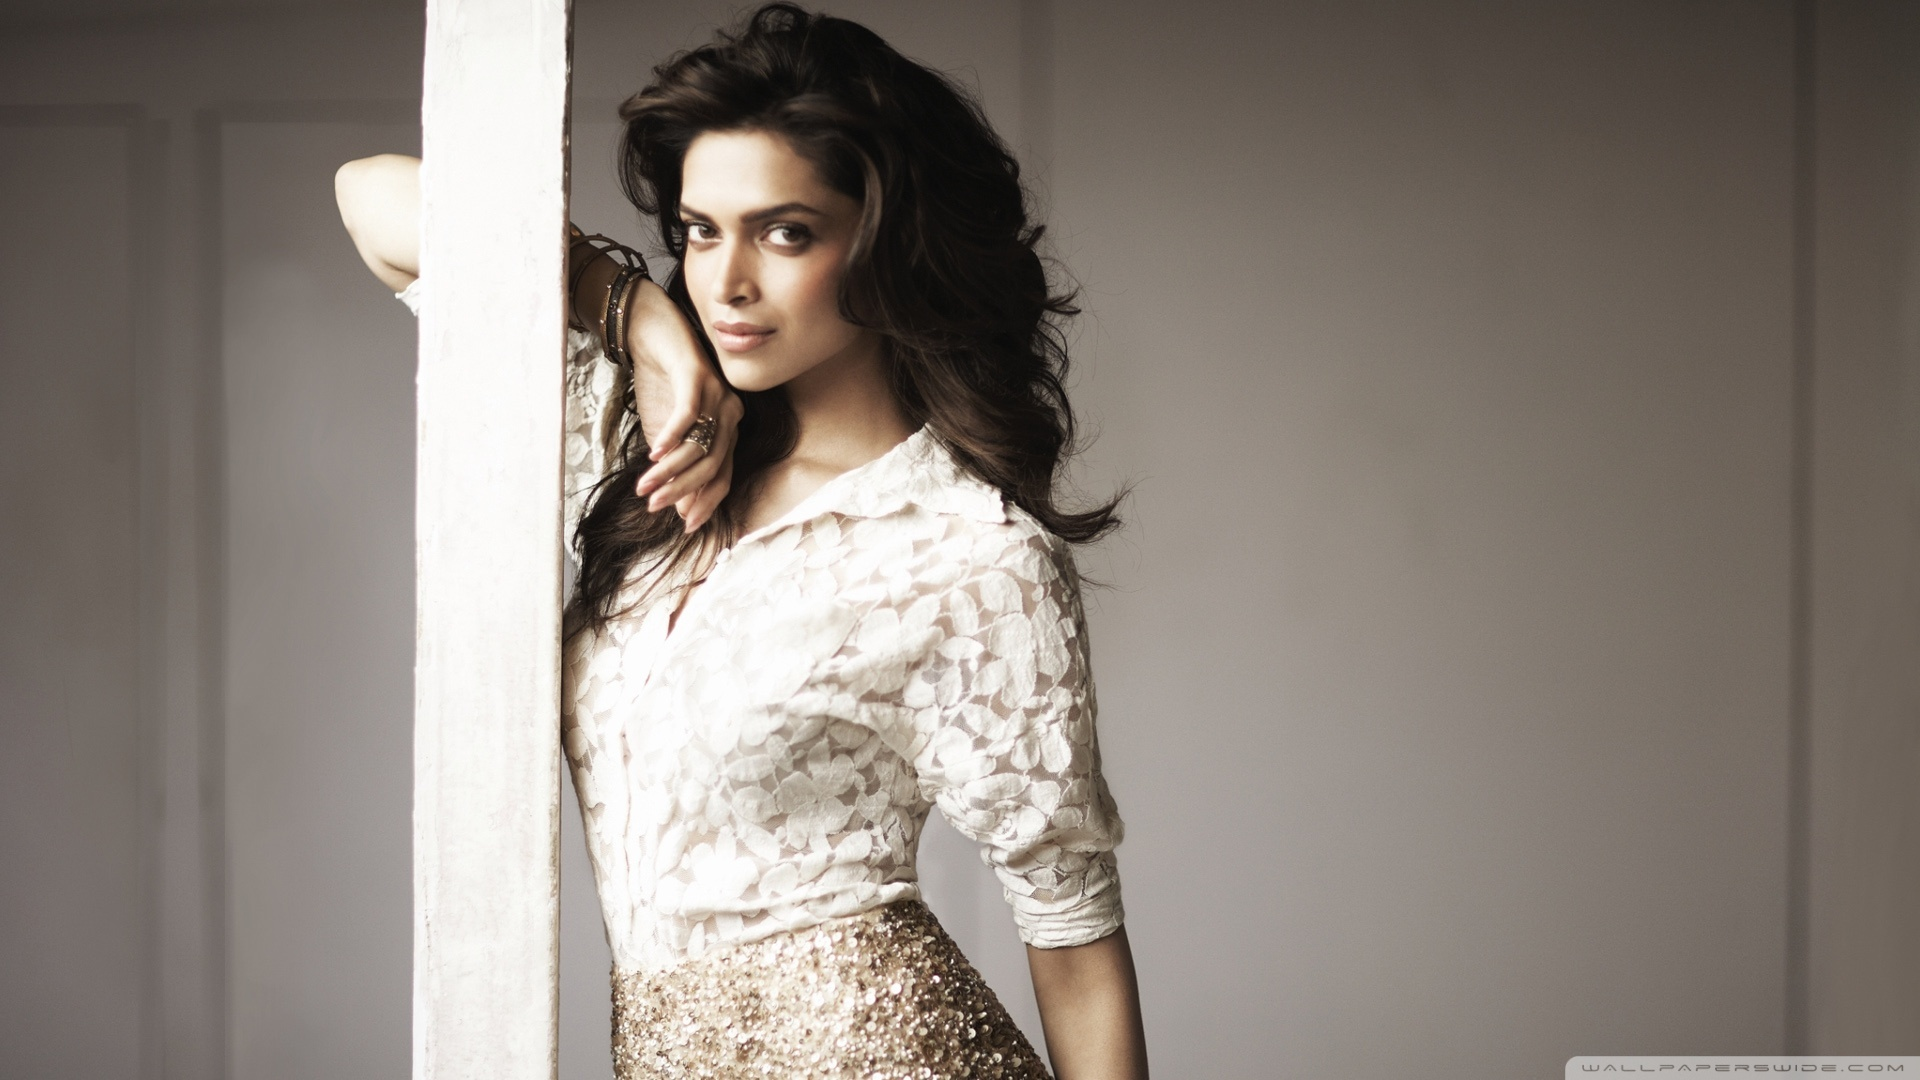 Download Free WallpaperDeepika Padukone